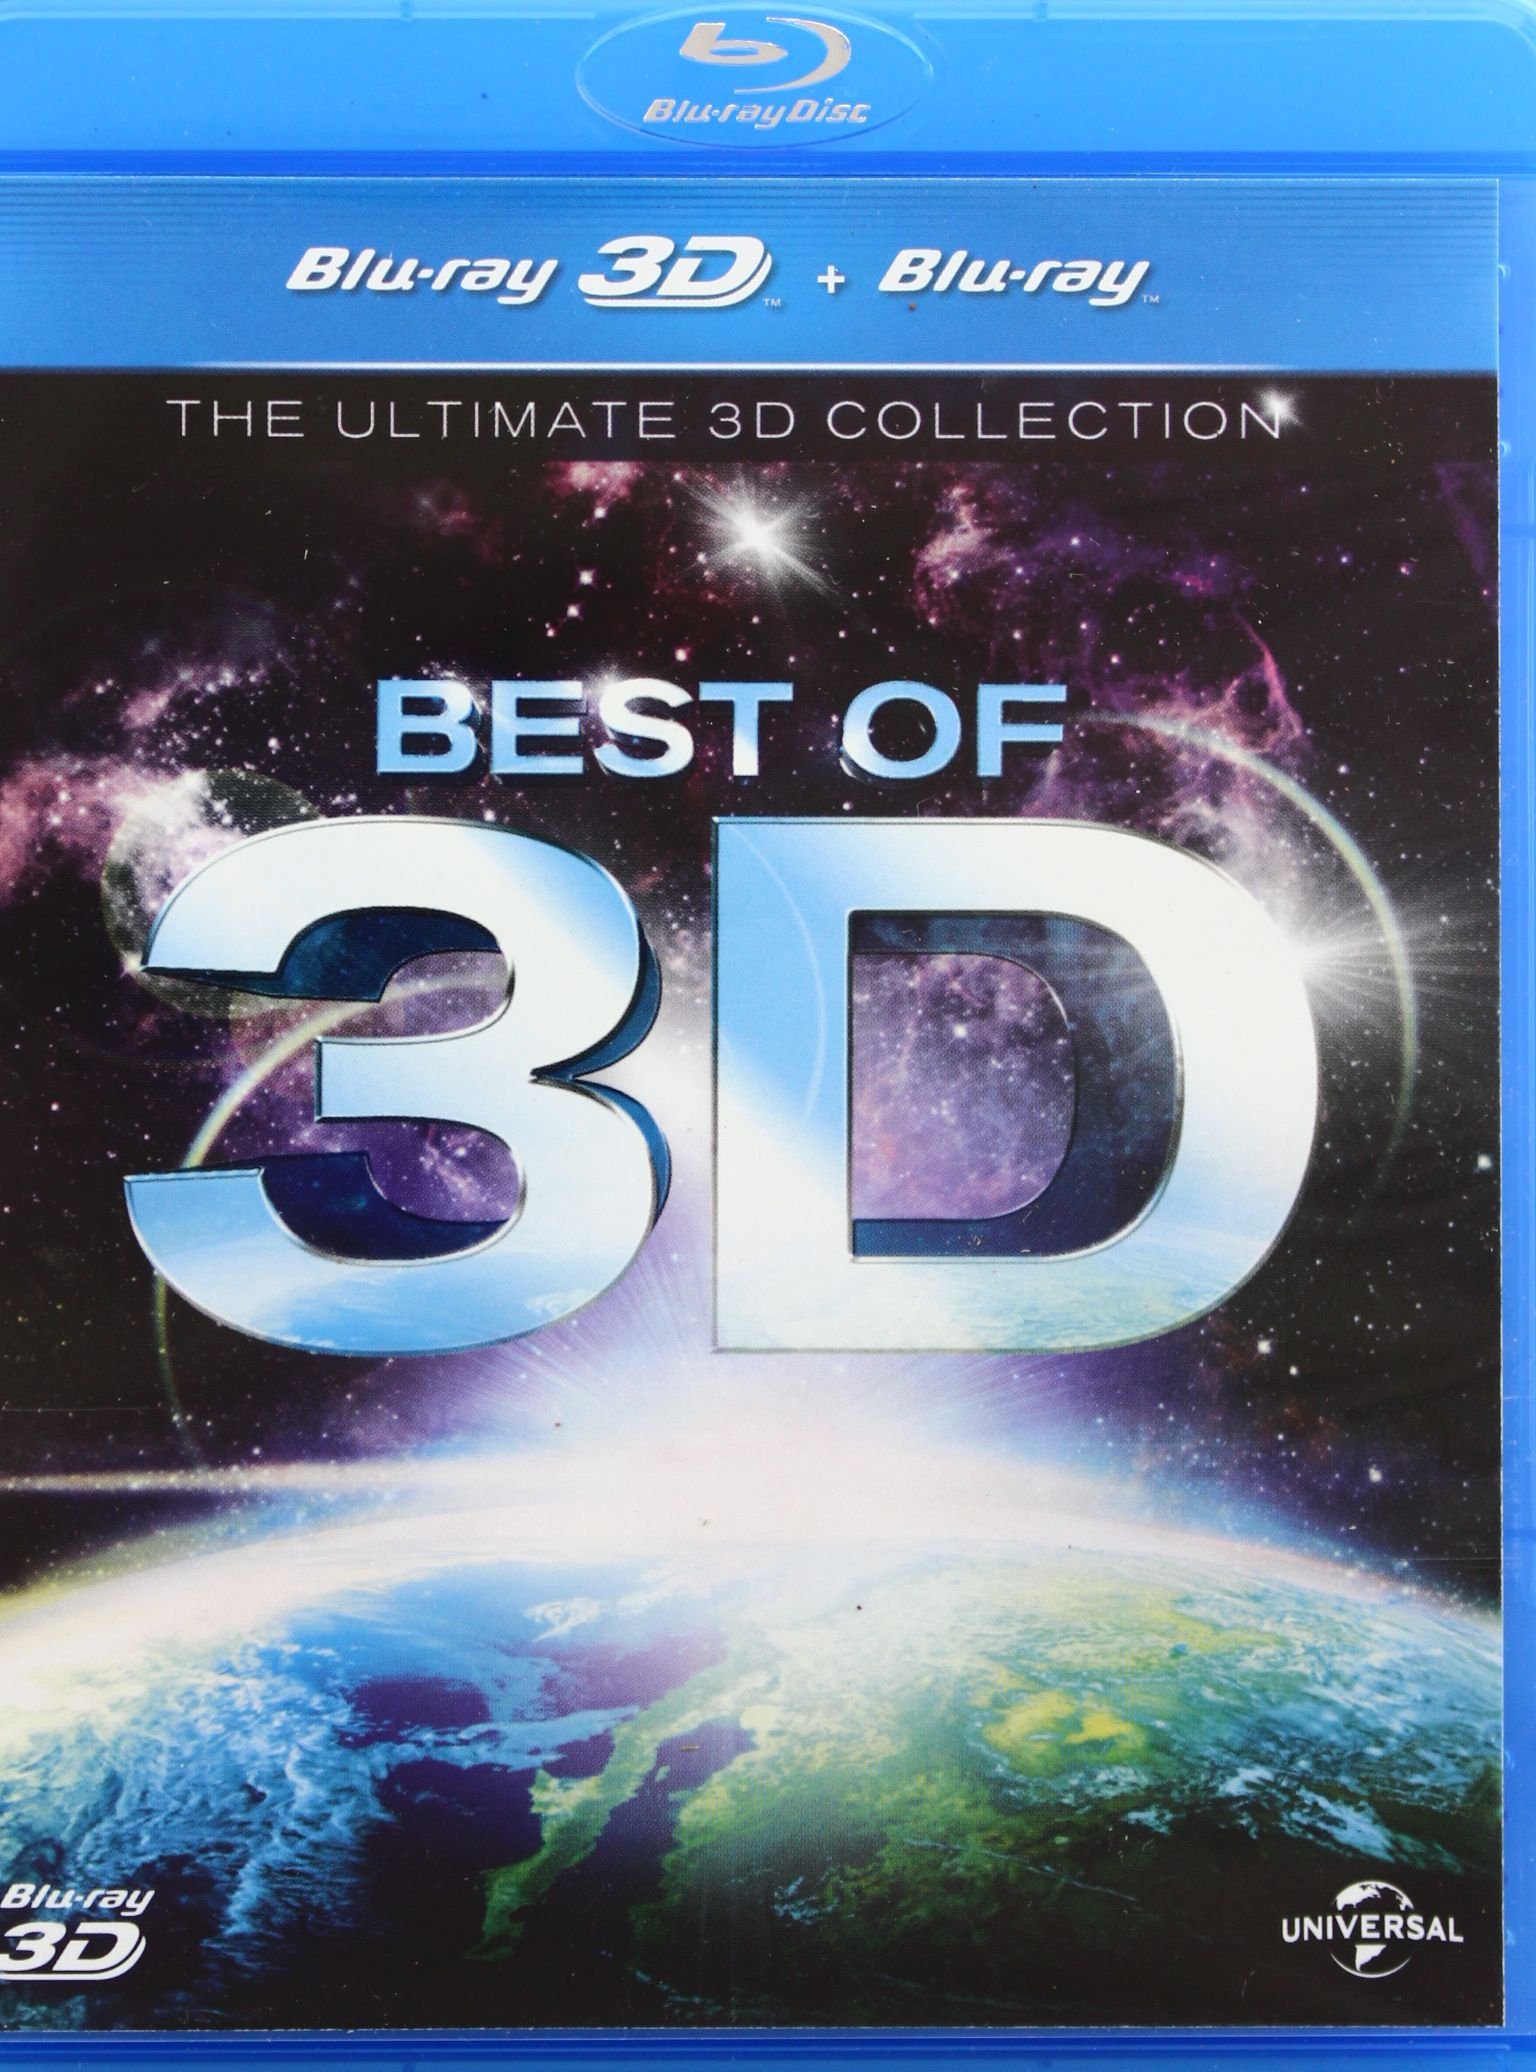 THE BEST OF 3D [BLU-RAY 3D]